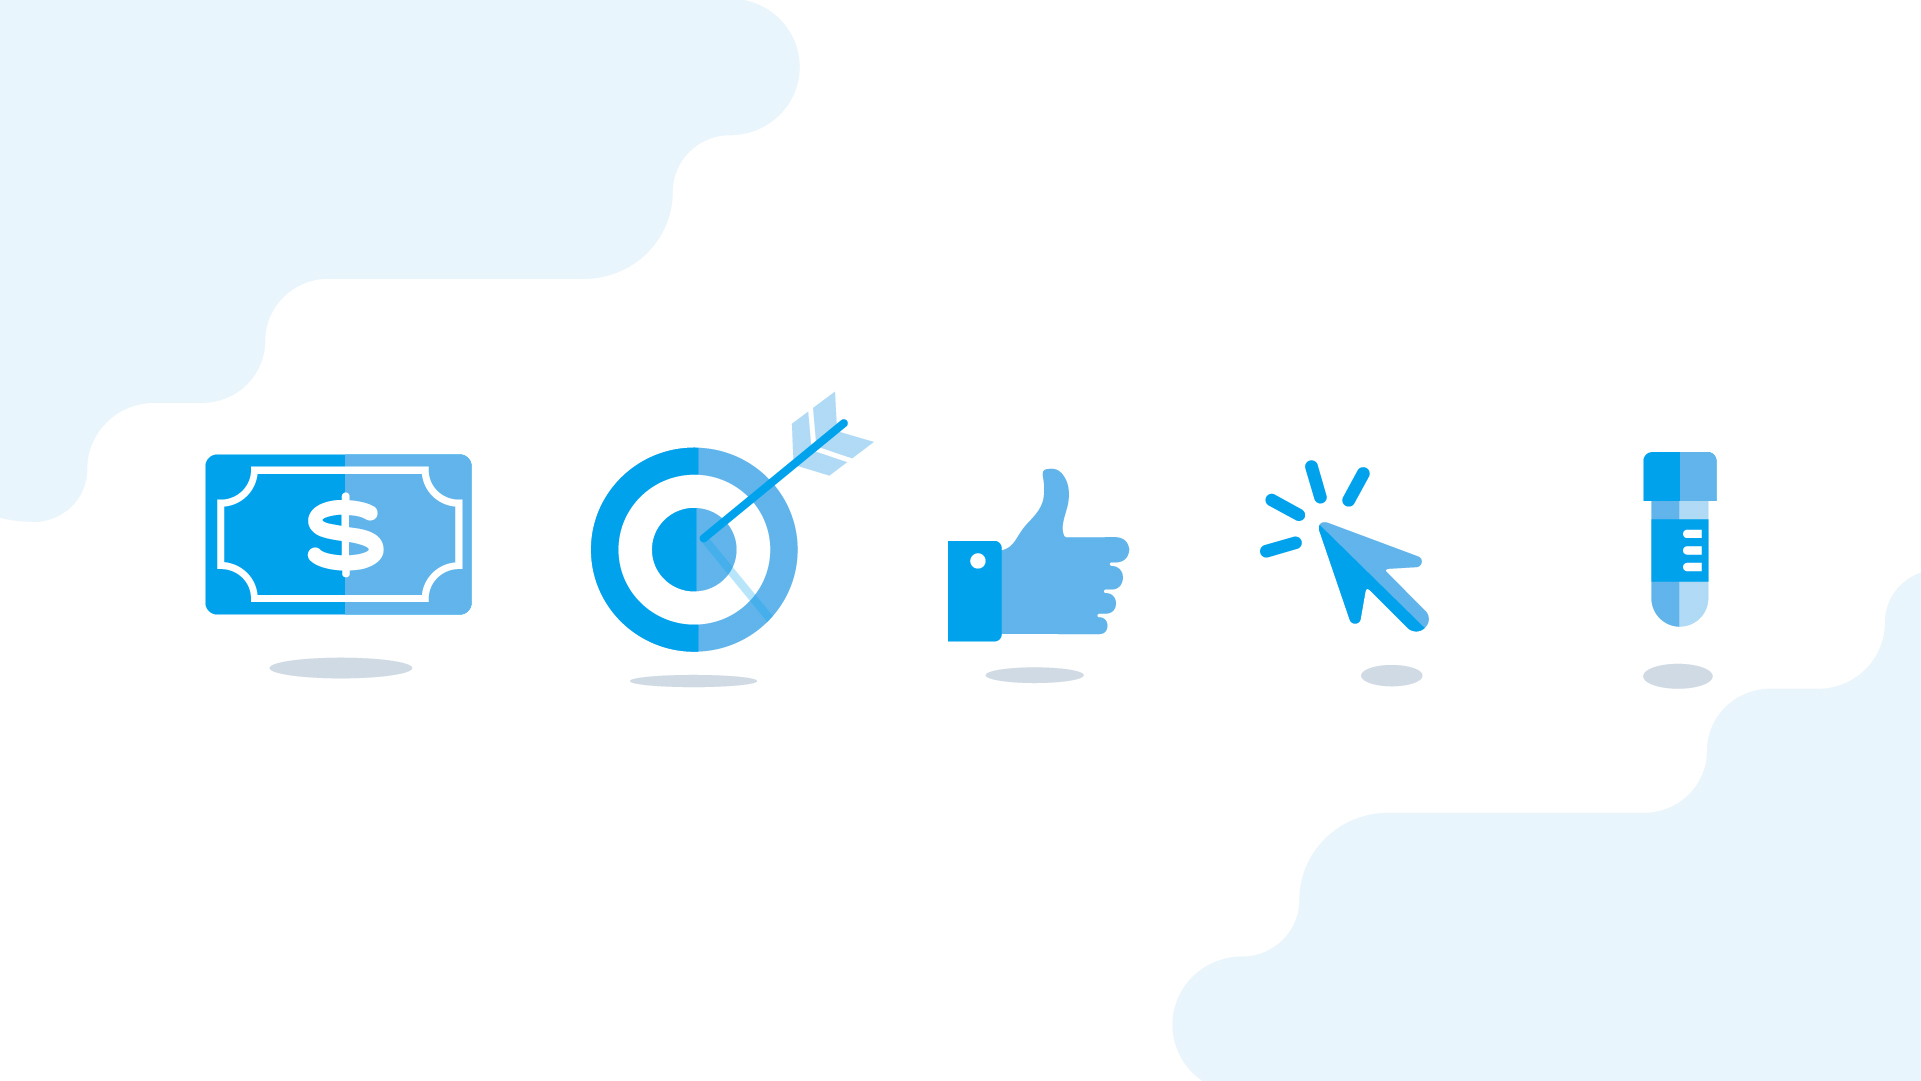 dollar bill, target, thumbs up, mouse cursor and test tube icons on blue and white backdrop